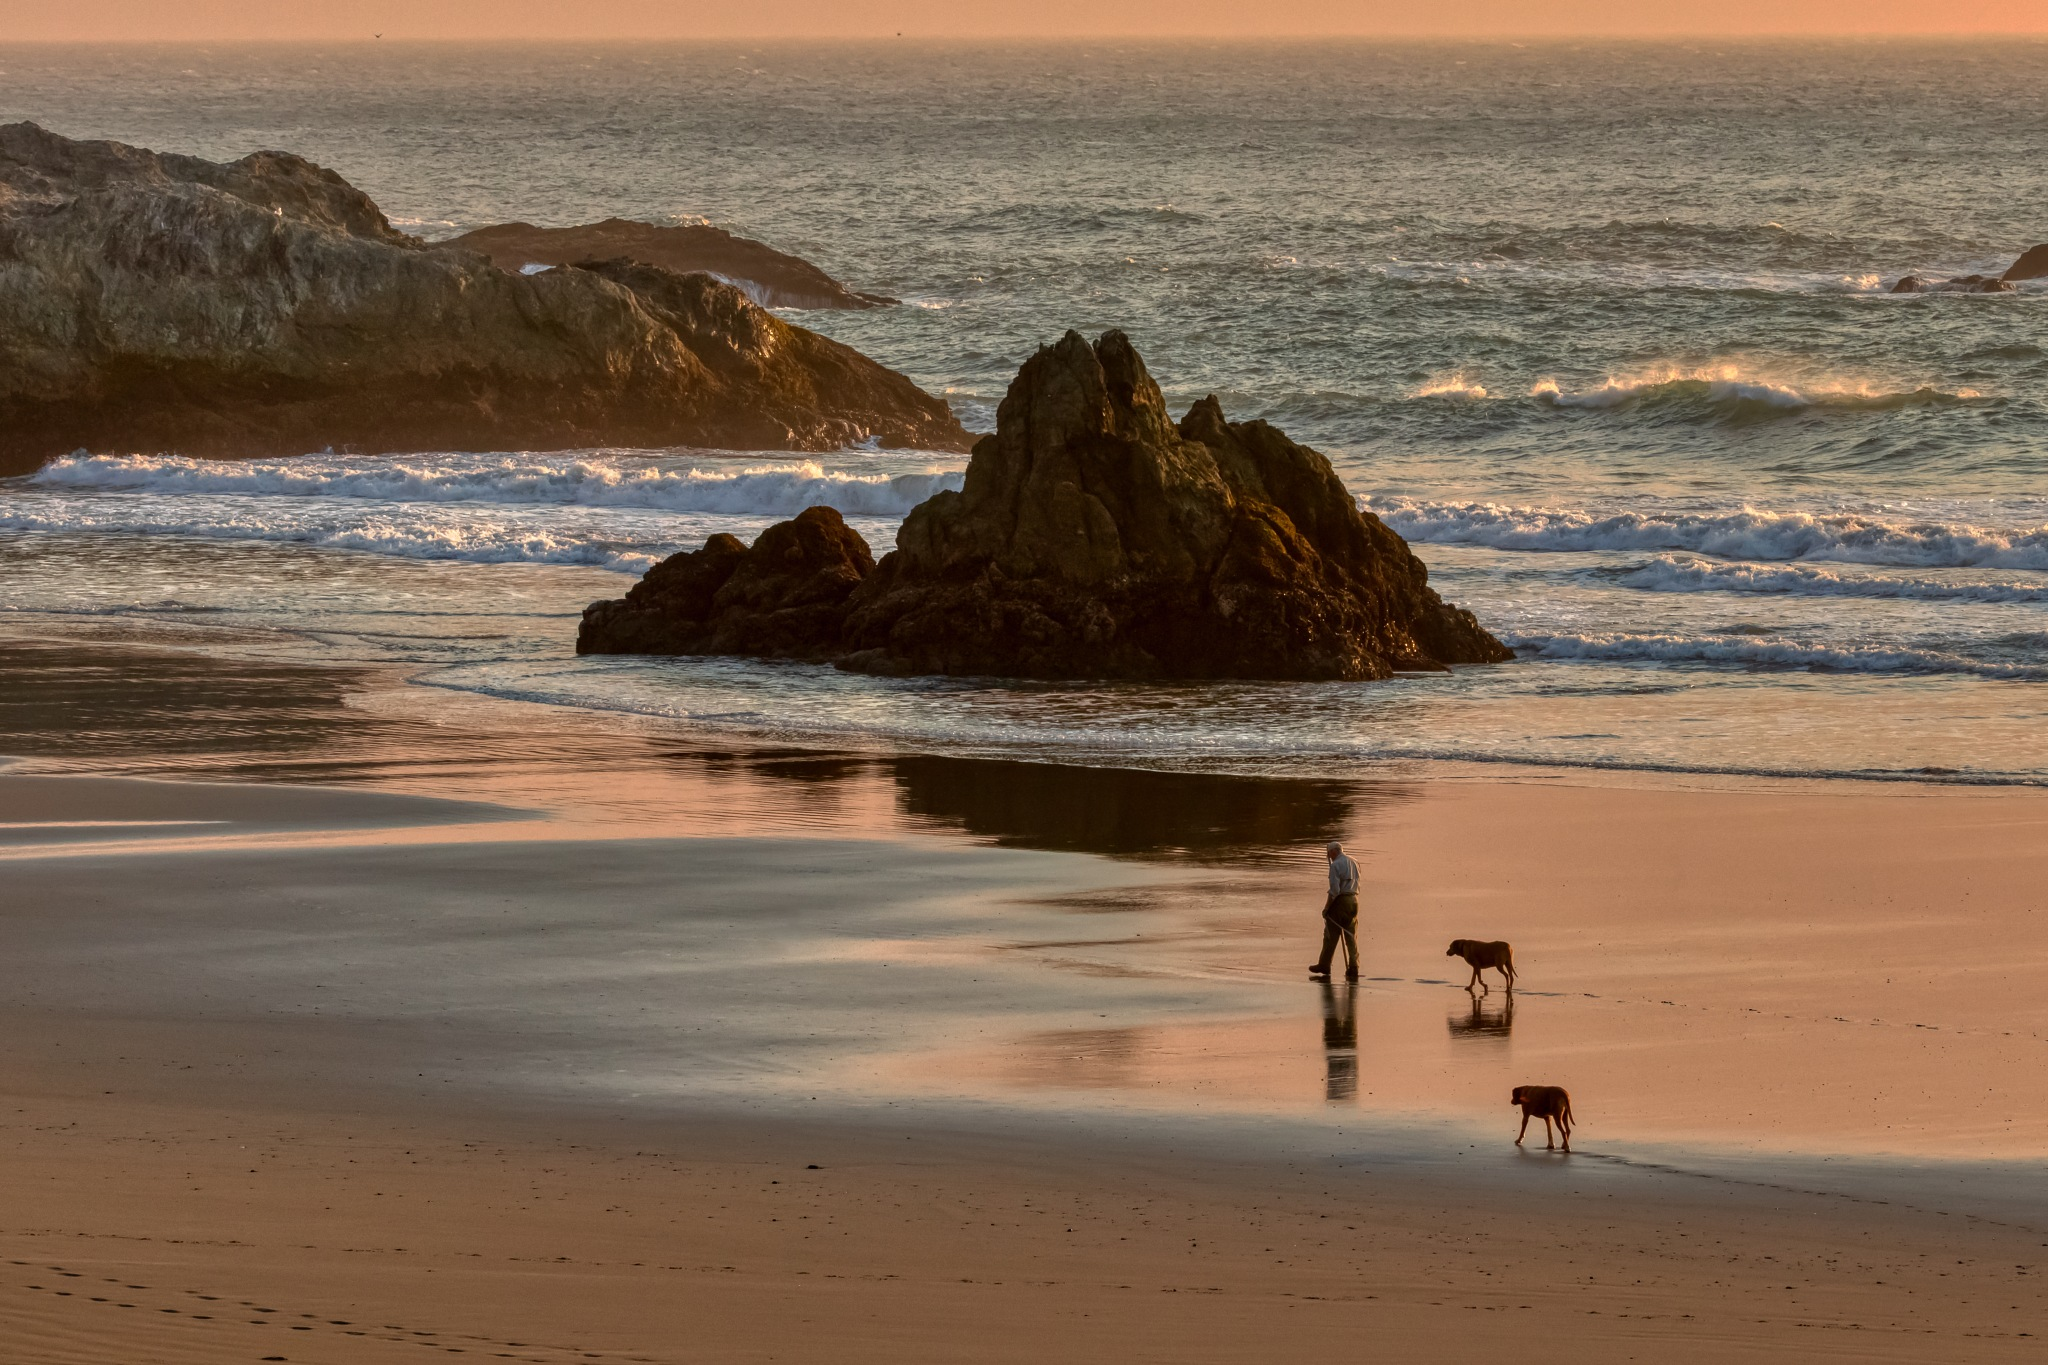 Sunset walk with his two best friends by David Weisbach